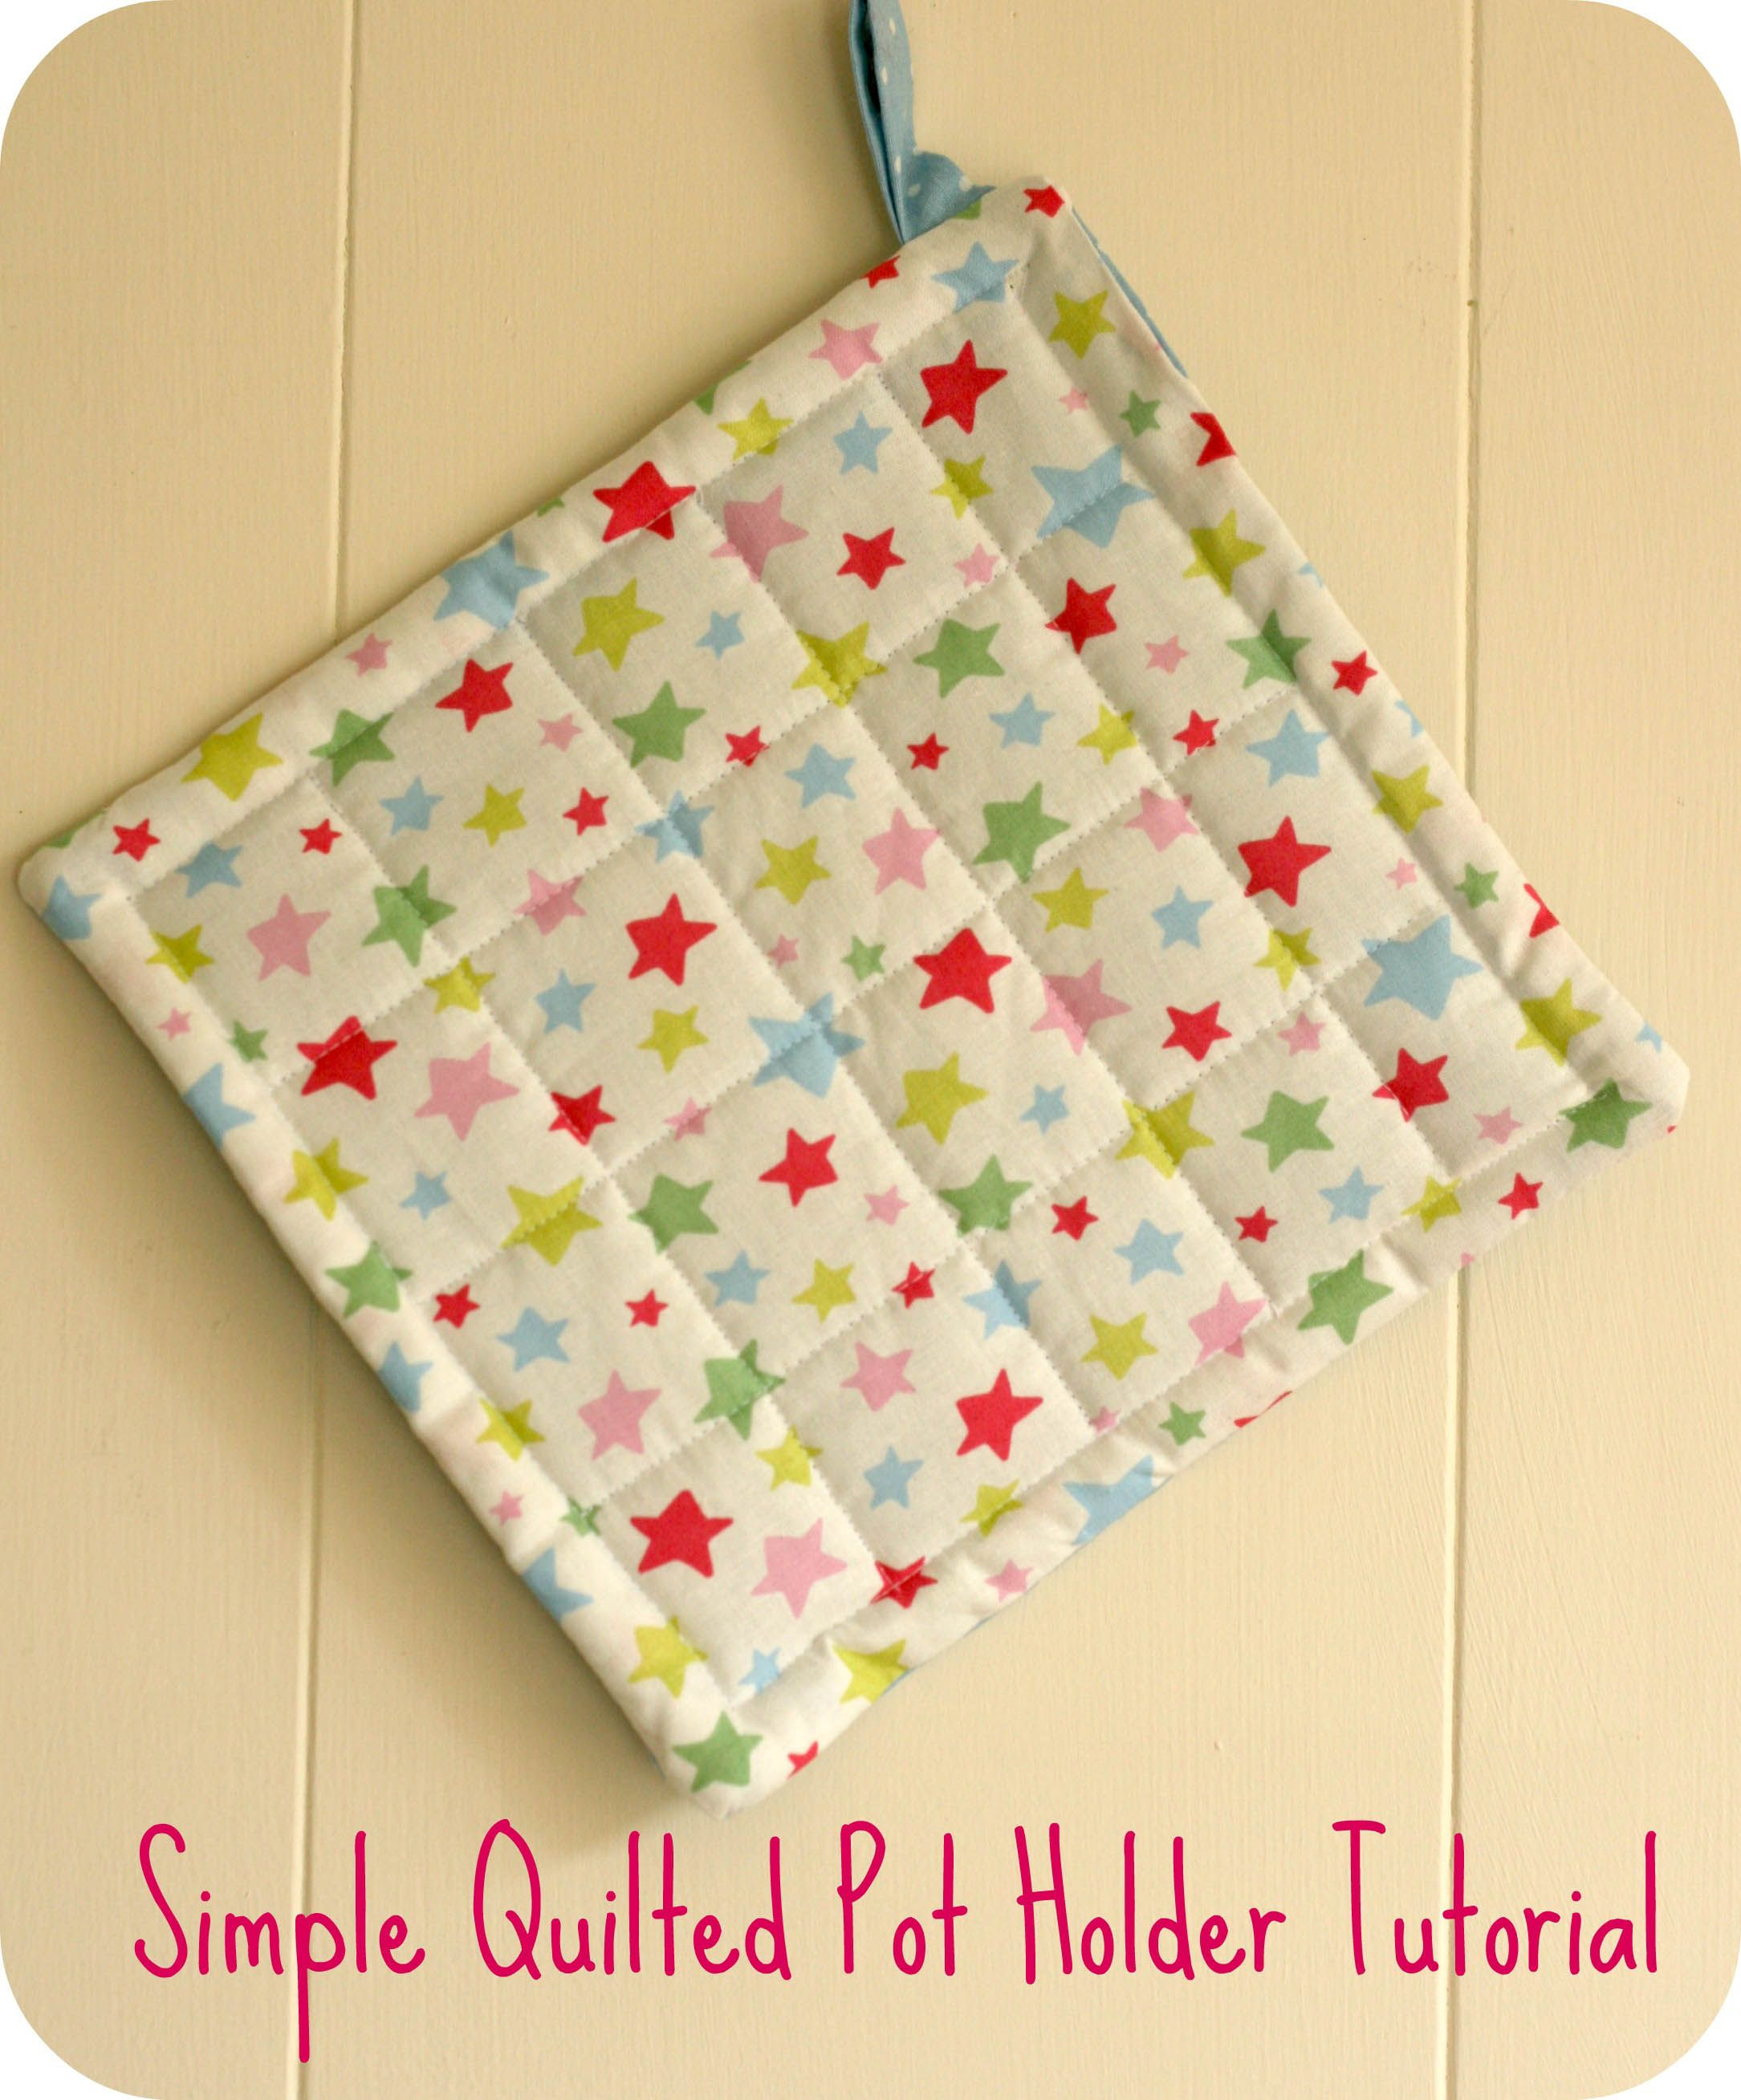 Quilted potholder tutorial.  Great gift idea.